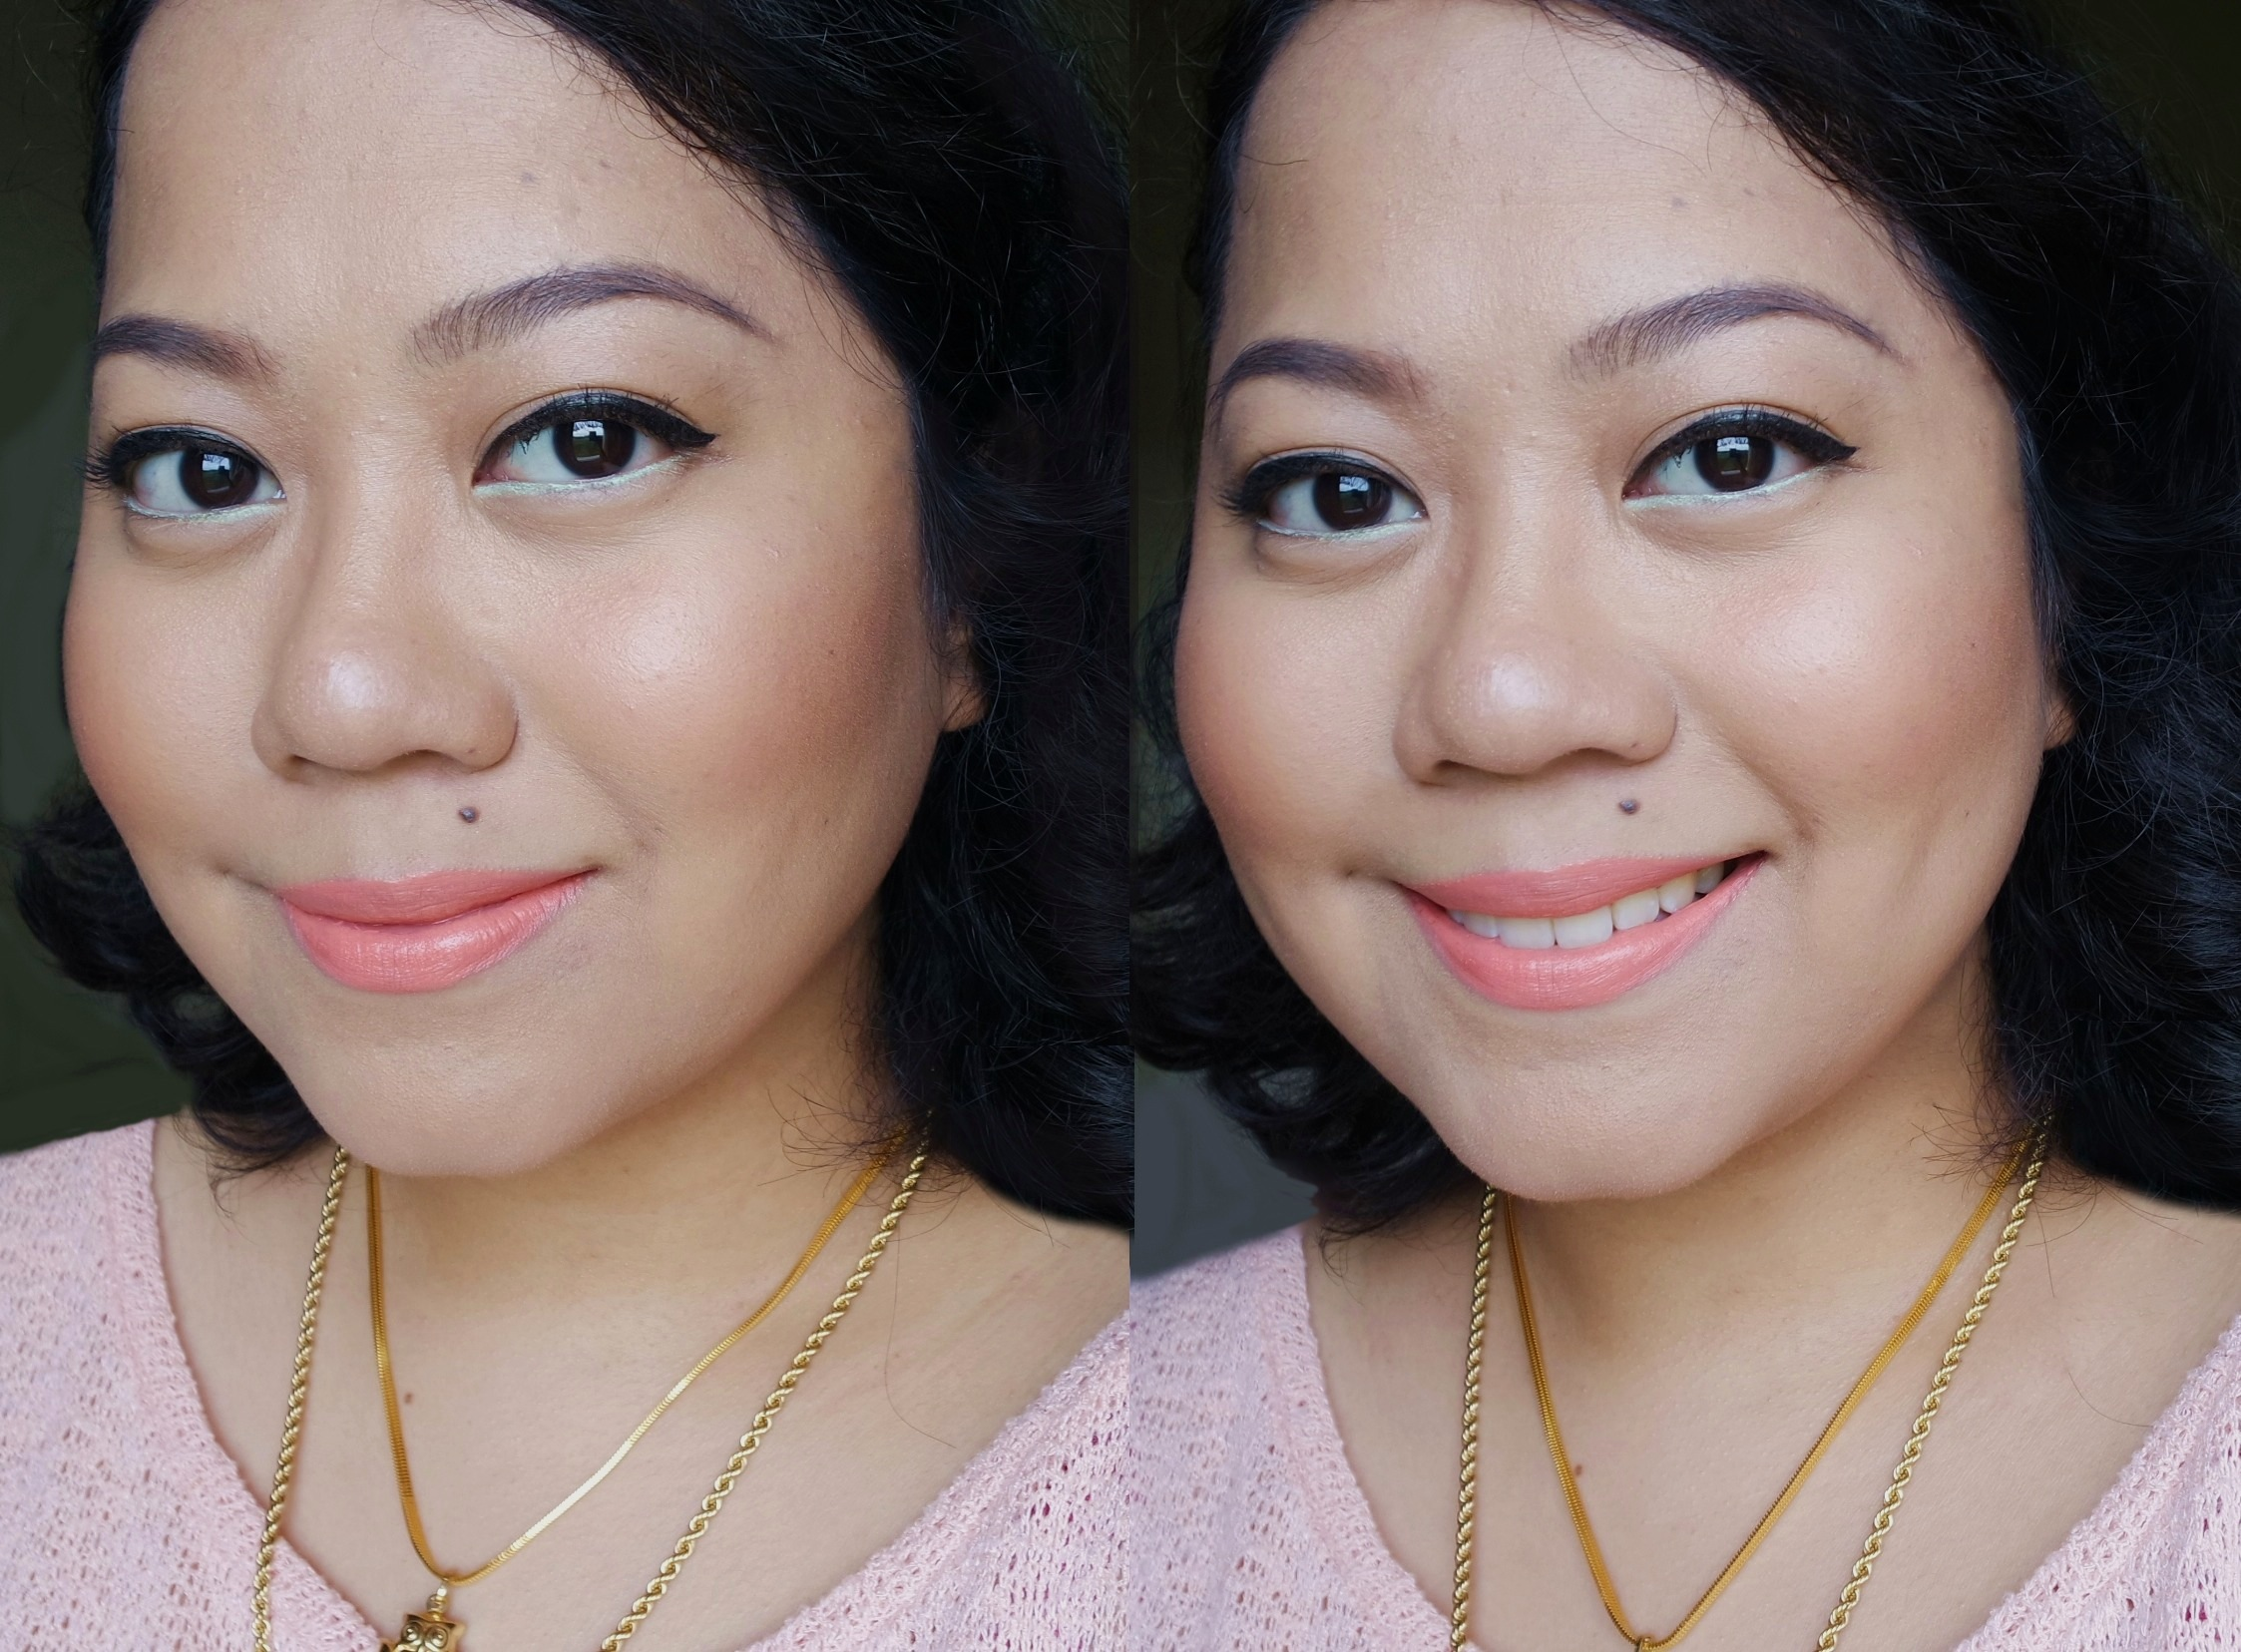 Wearing the ZZ Cream here under the Happy Skin Don't Get Mad Get Even Powder Foundation. I love this combo and have been on it this whole month! The finish is super smooth and quite flawless without being heavy.